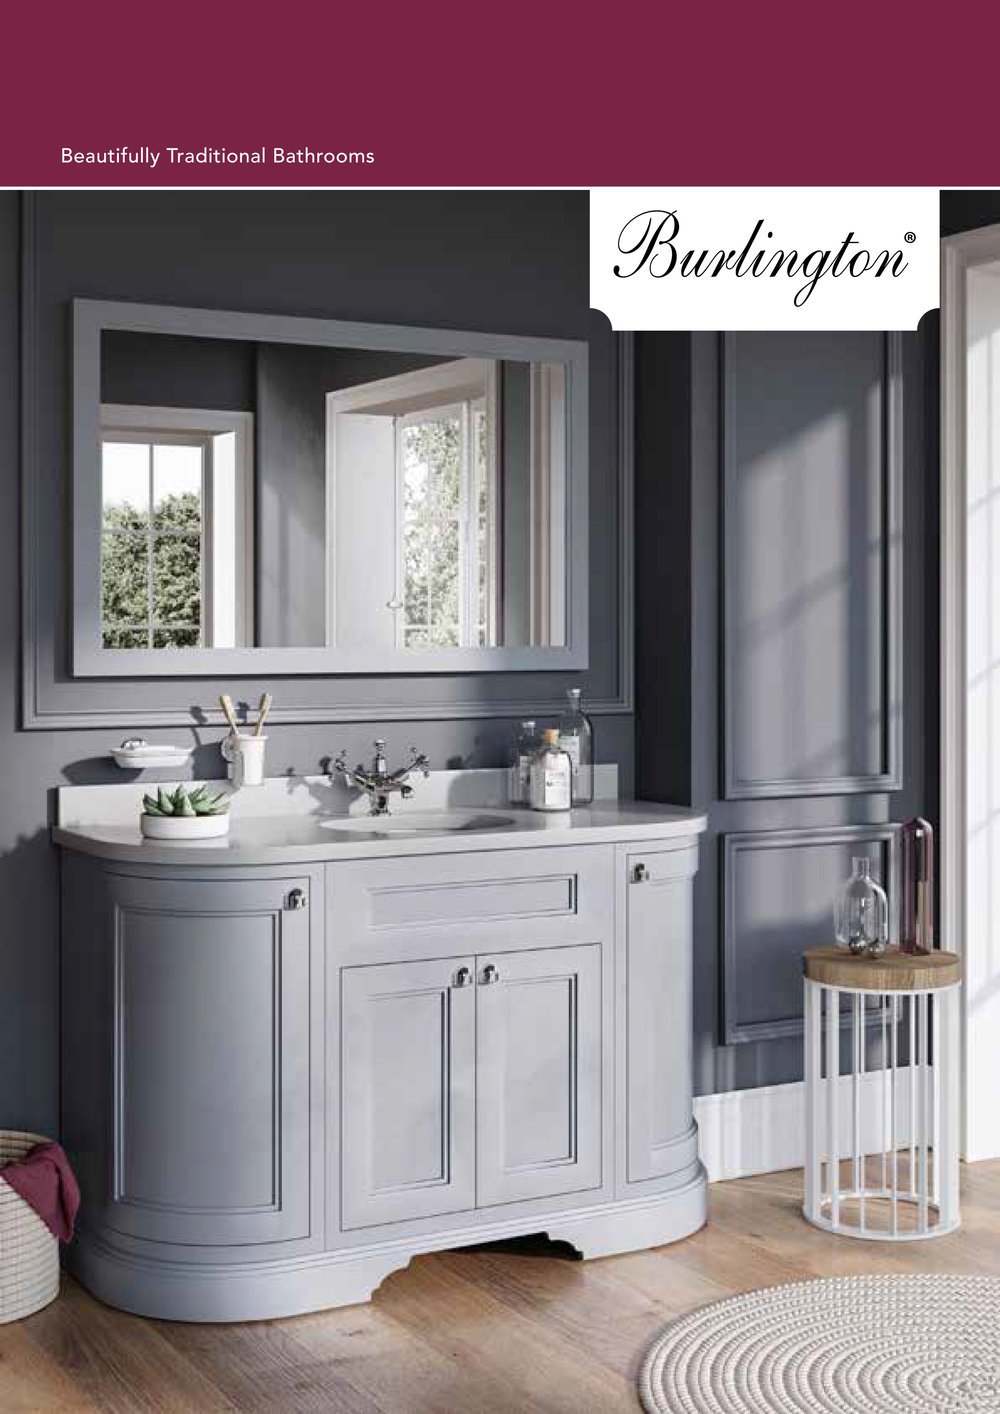 Burlington Arcade Brochure Waterloo Bathrooms Dublin.jpg